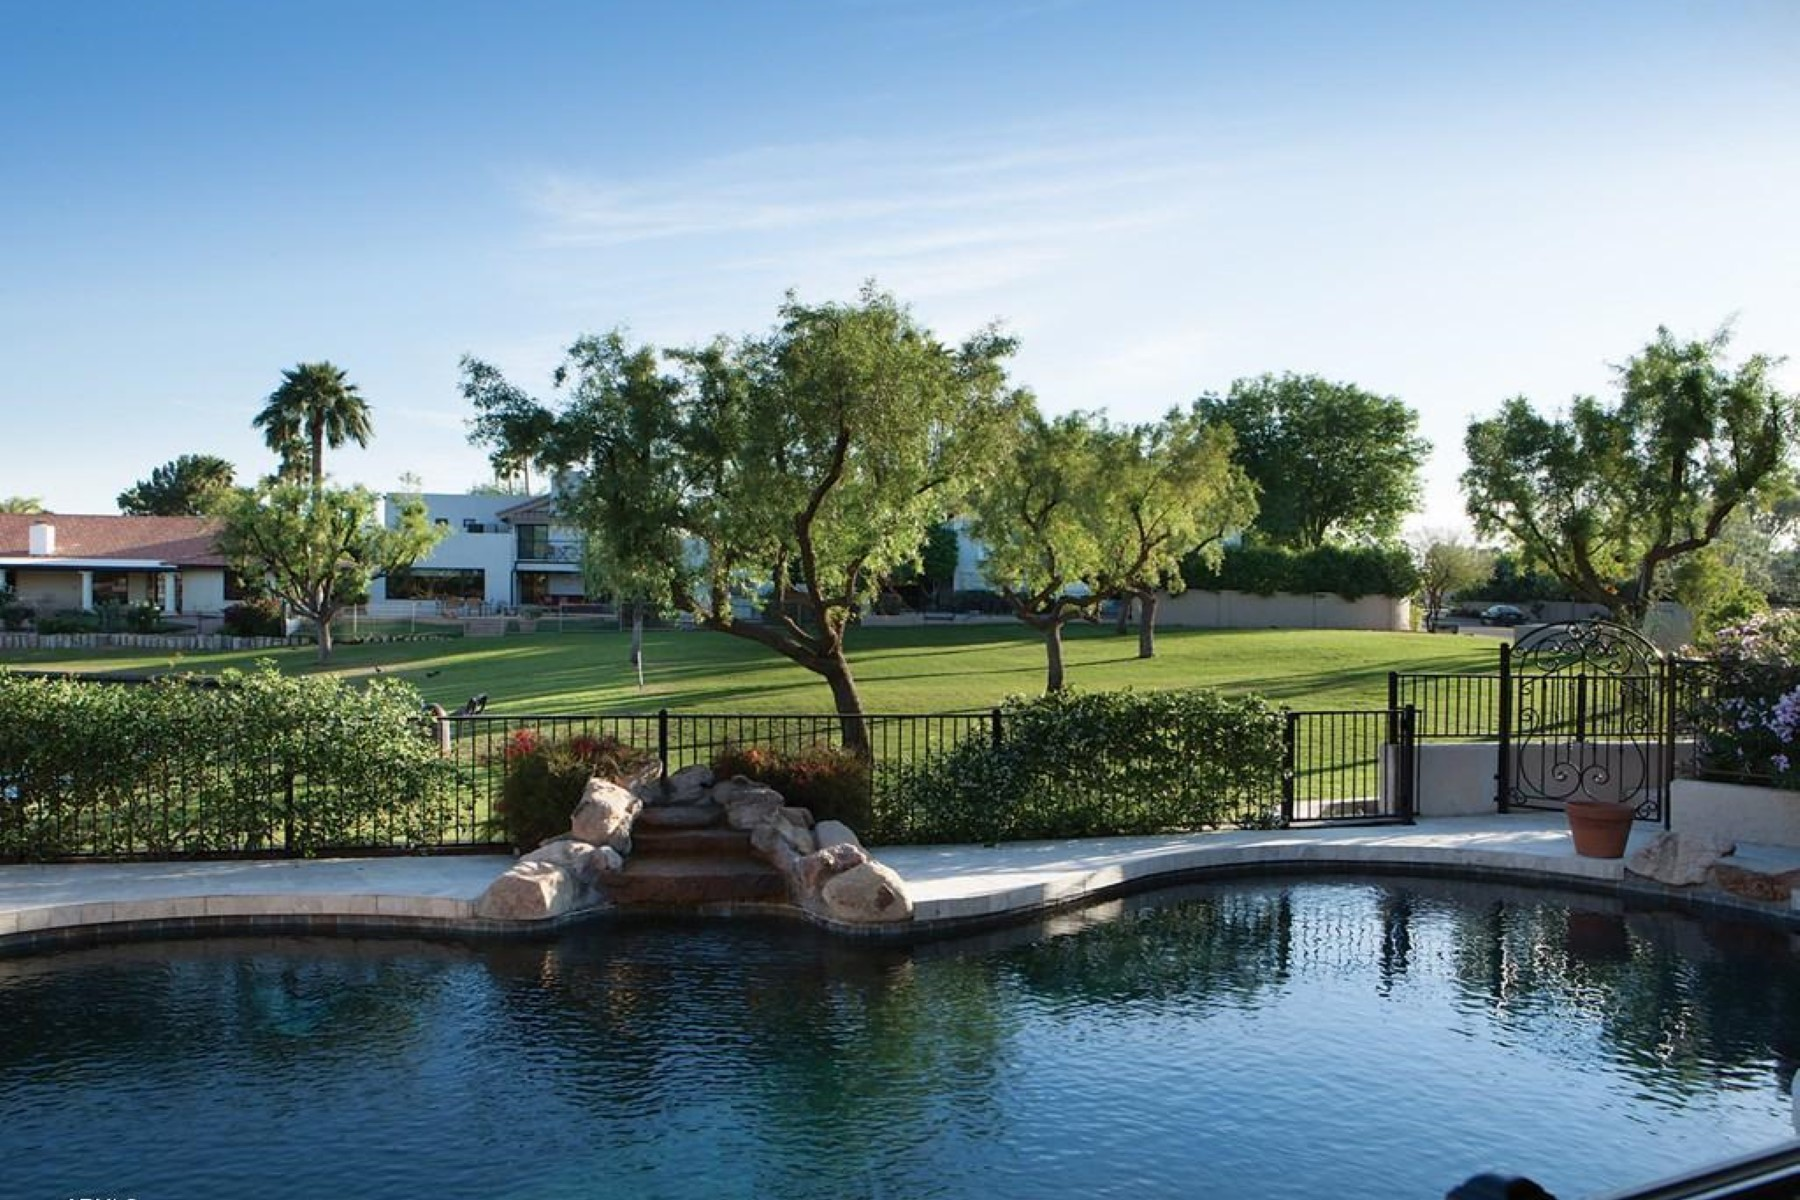 一戸建て のために 売買 アット Lakefront living at The Islands at McCormick Ranch 8167 E Del Camino Dr Scottsdale, アリゾナ, 85258 アメリカ合衆国